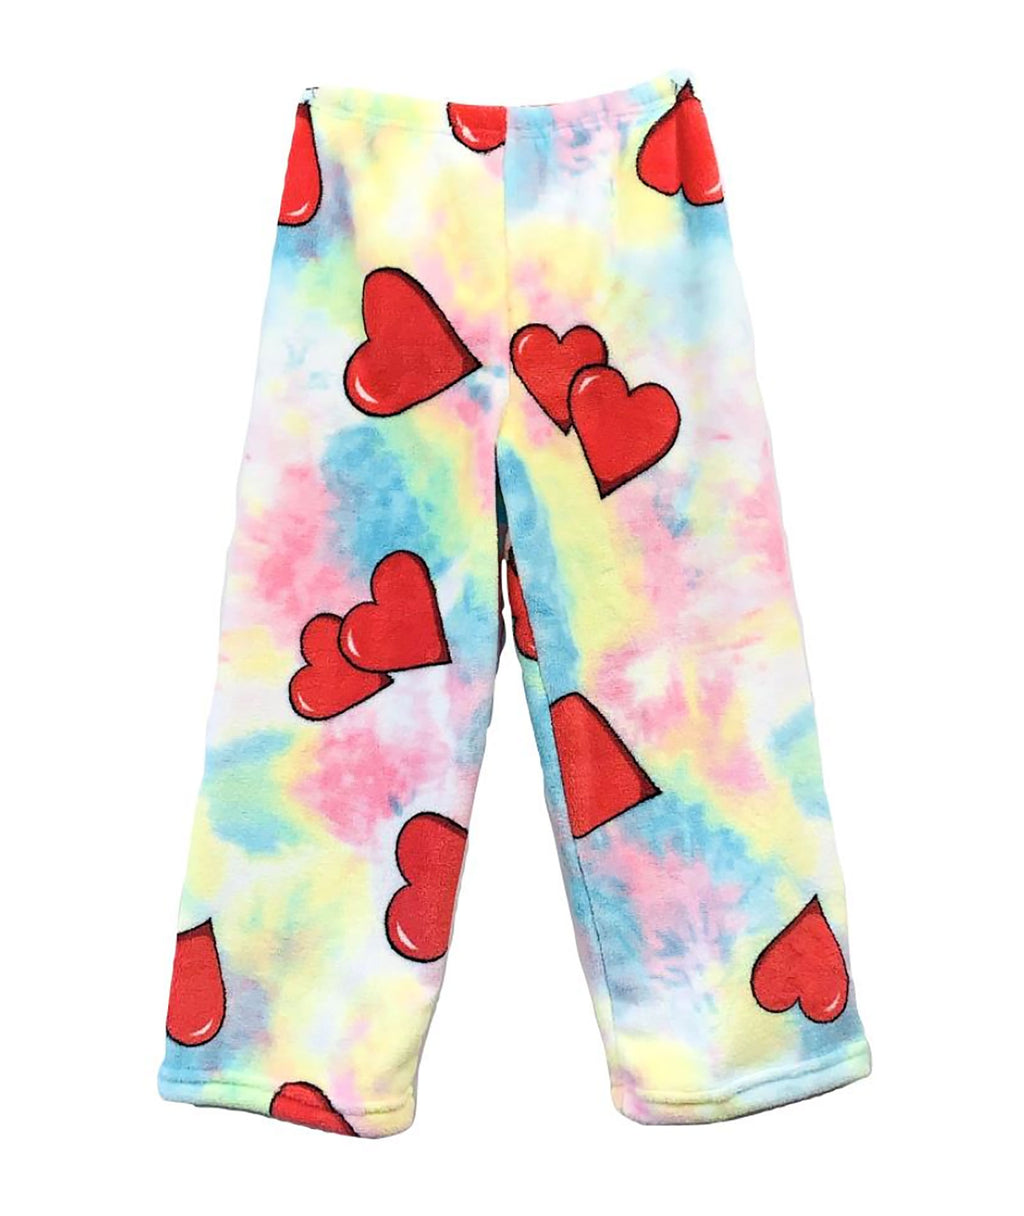 Made with Love and Kisses Tie-Dye Hearts Pants